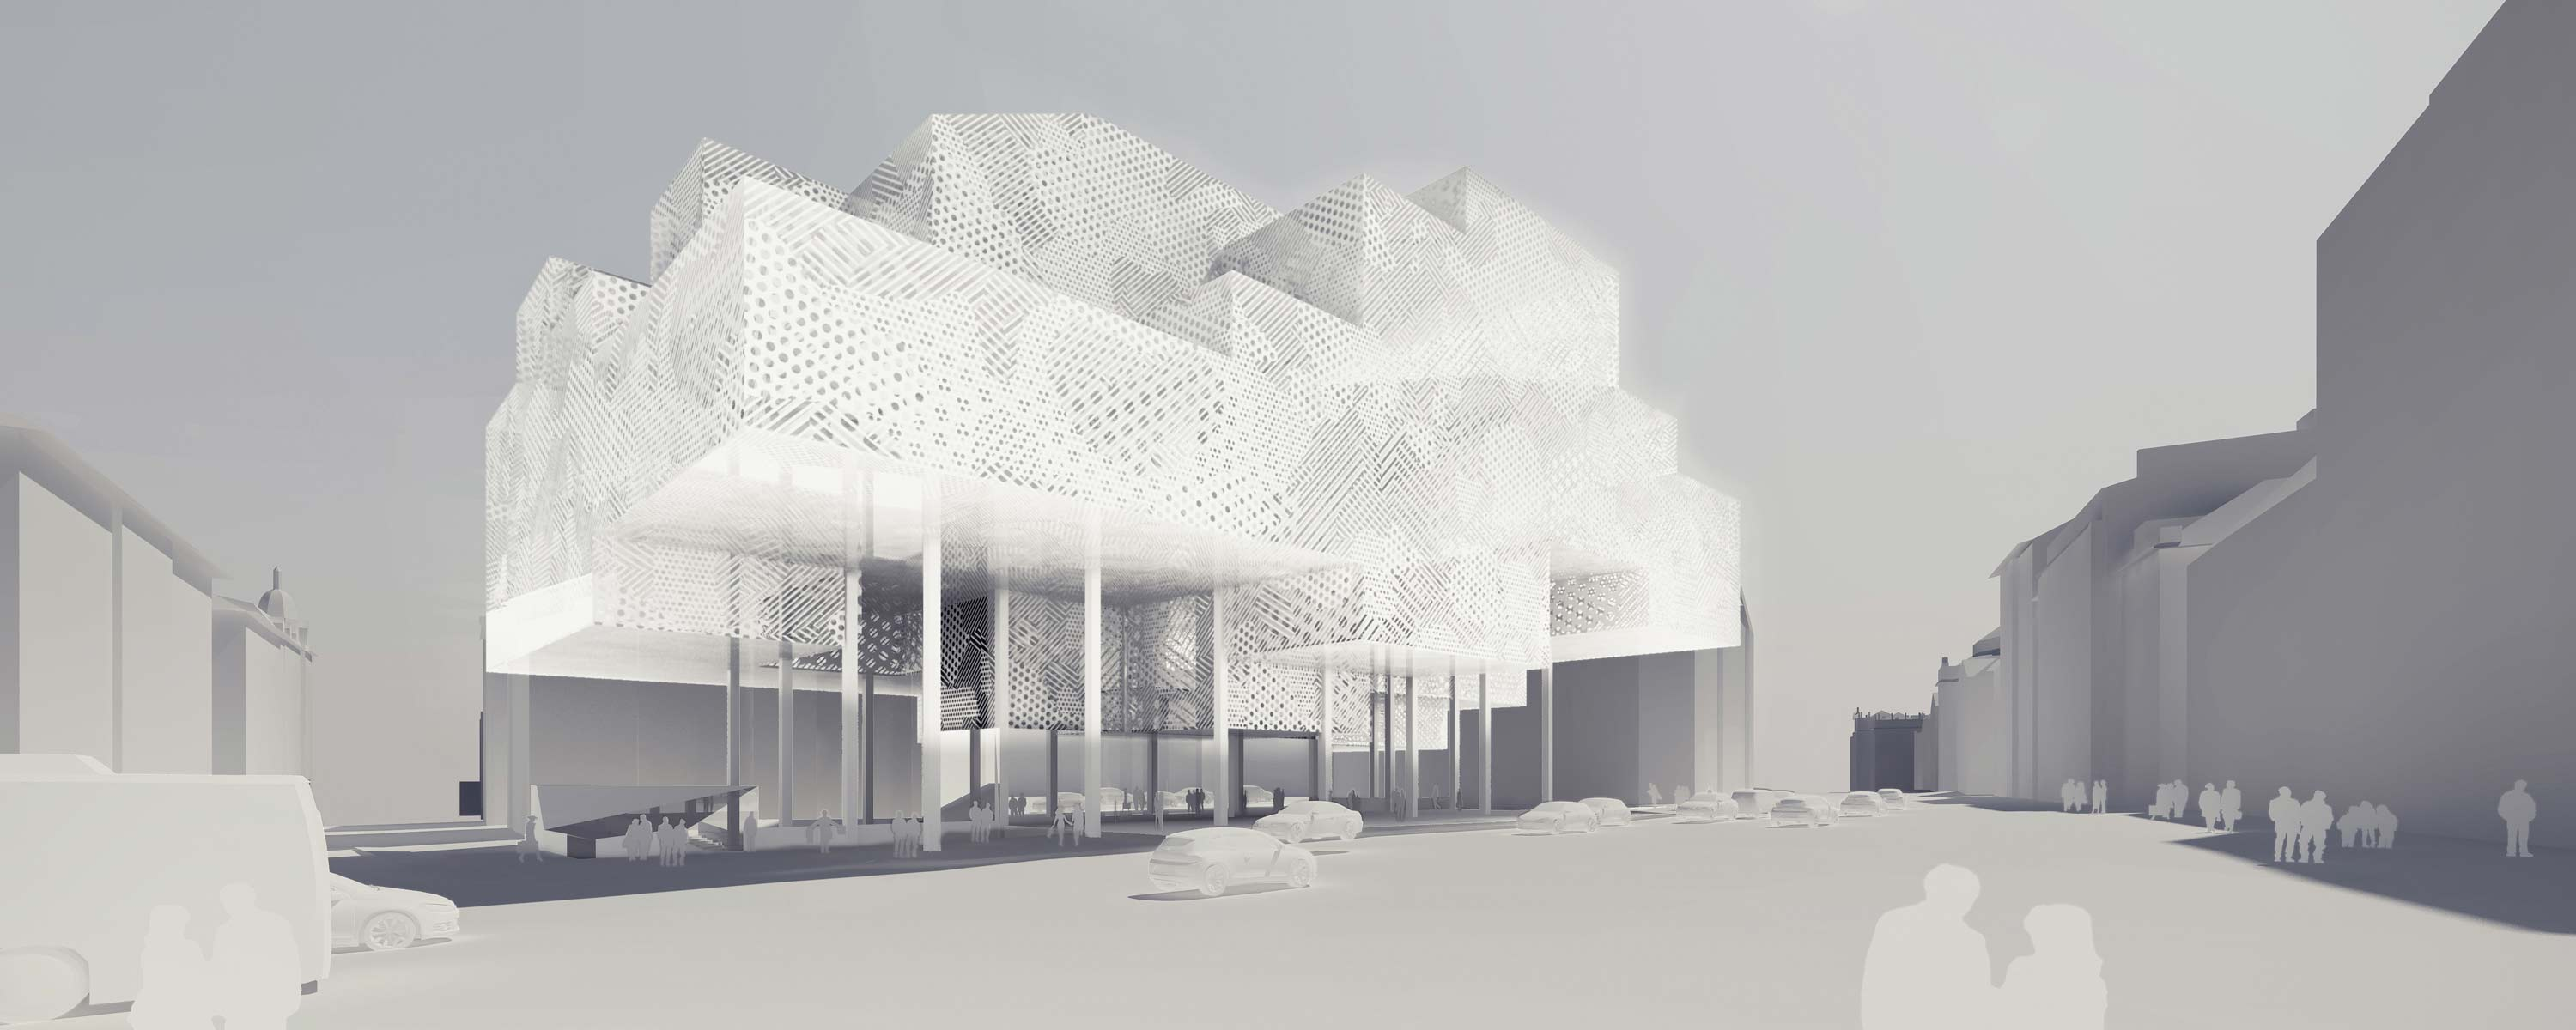 ppag_rathaustrasse_render_outside_view1